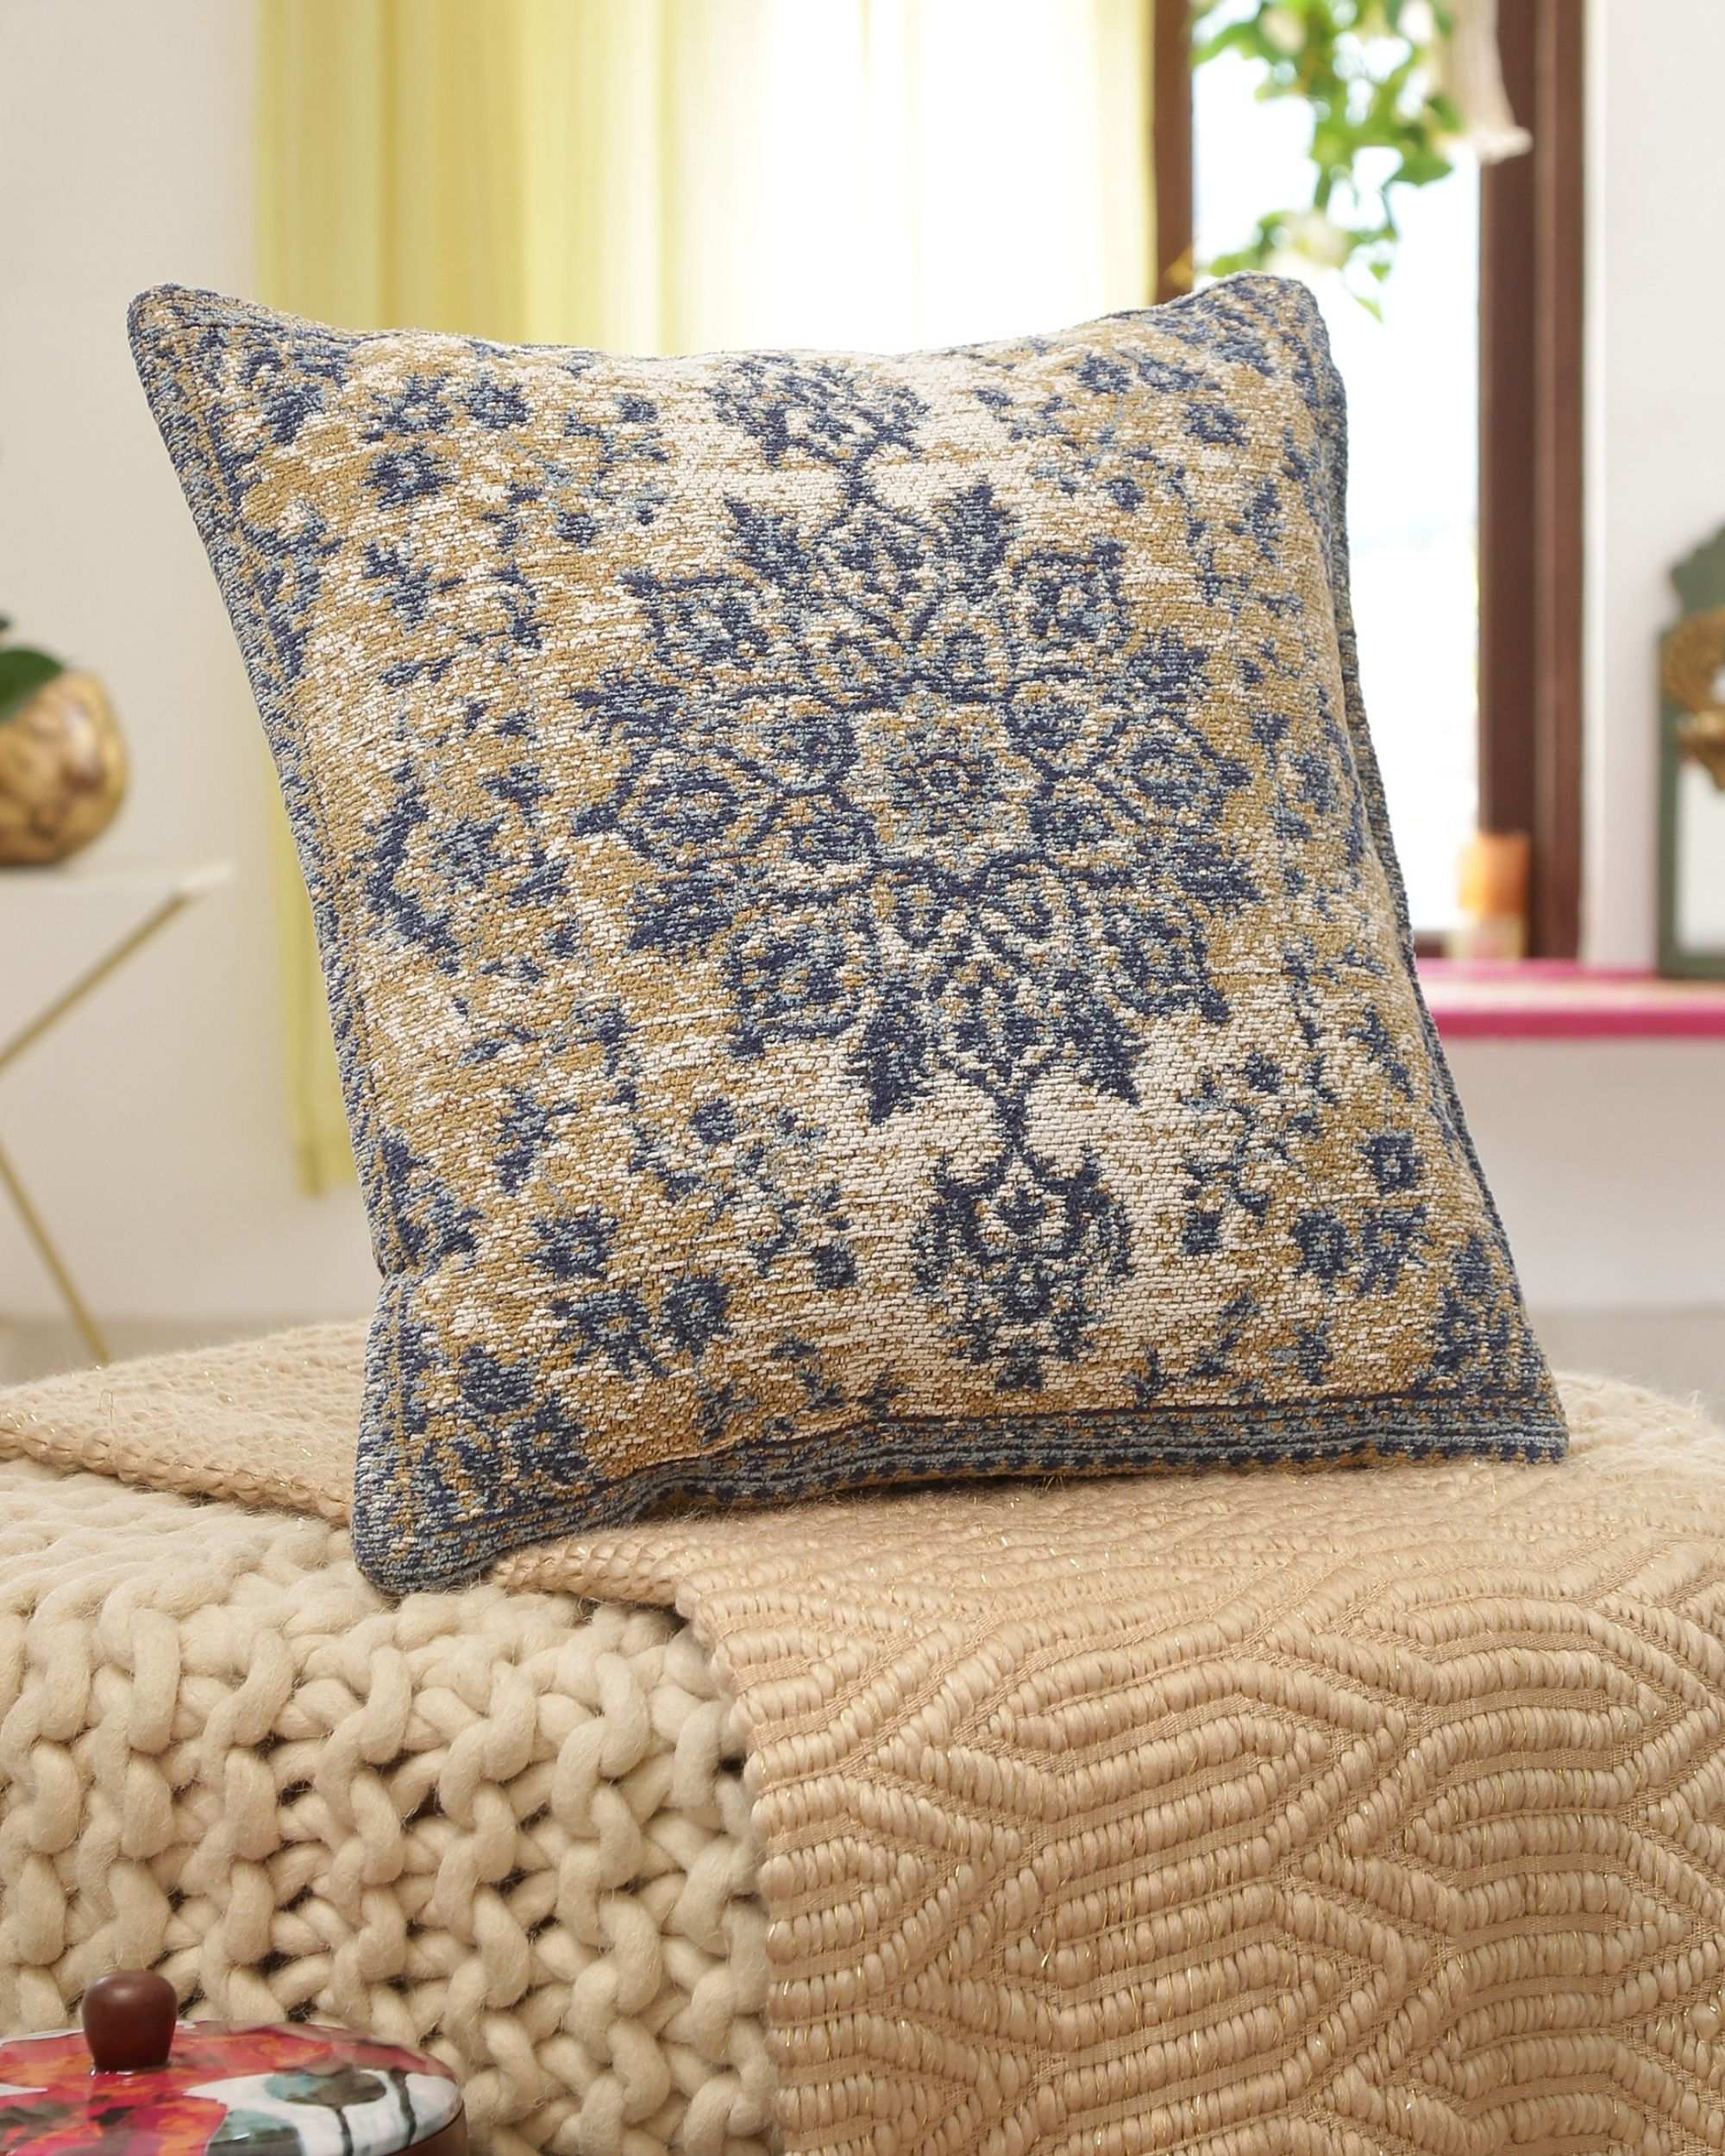 Beige and blue persian cushion cover